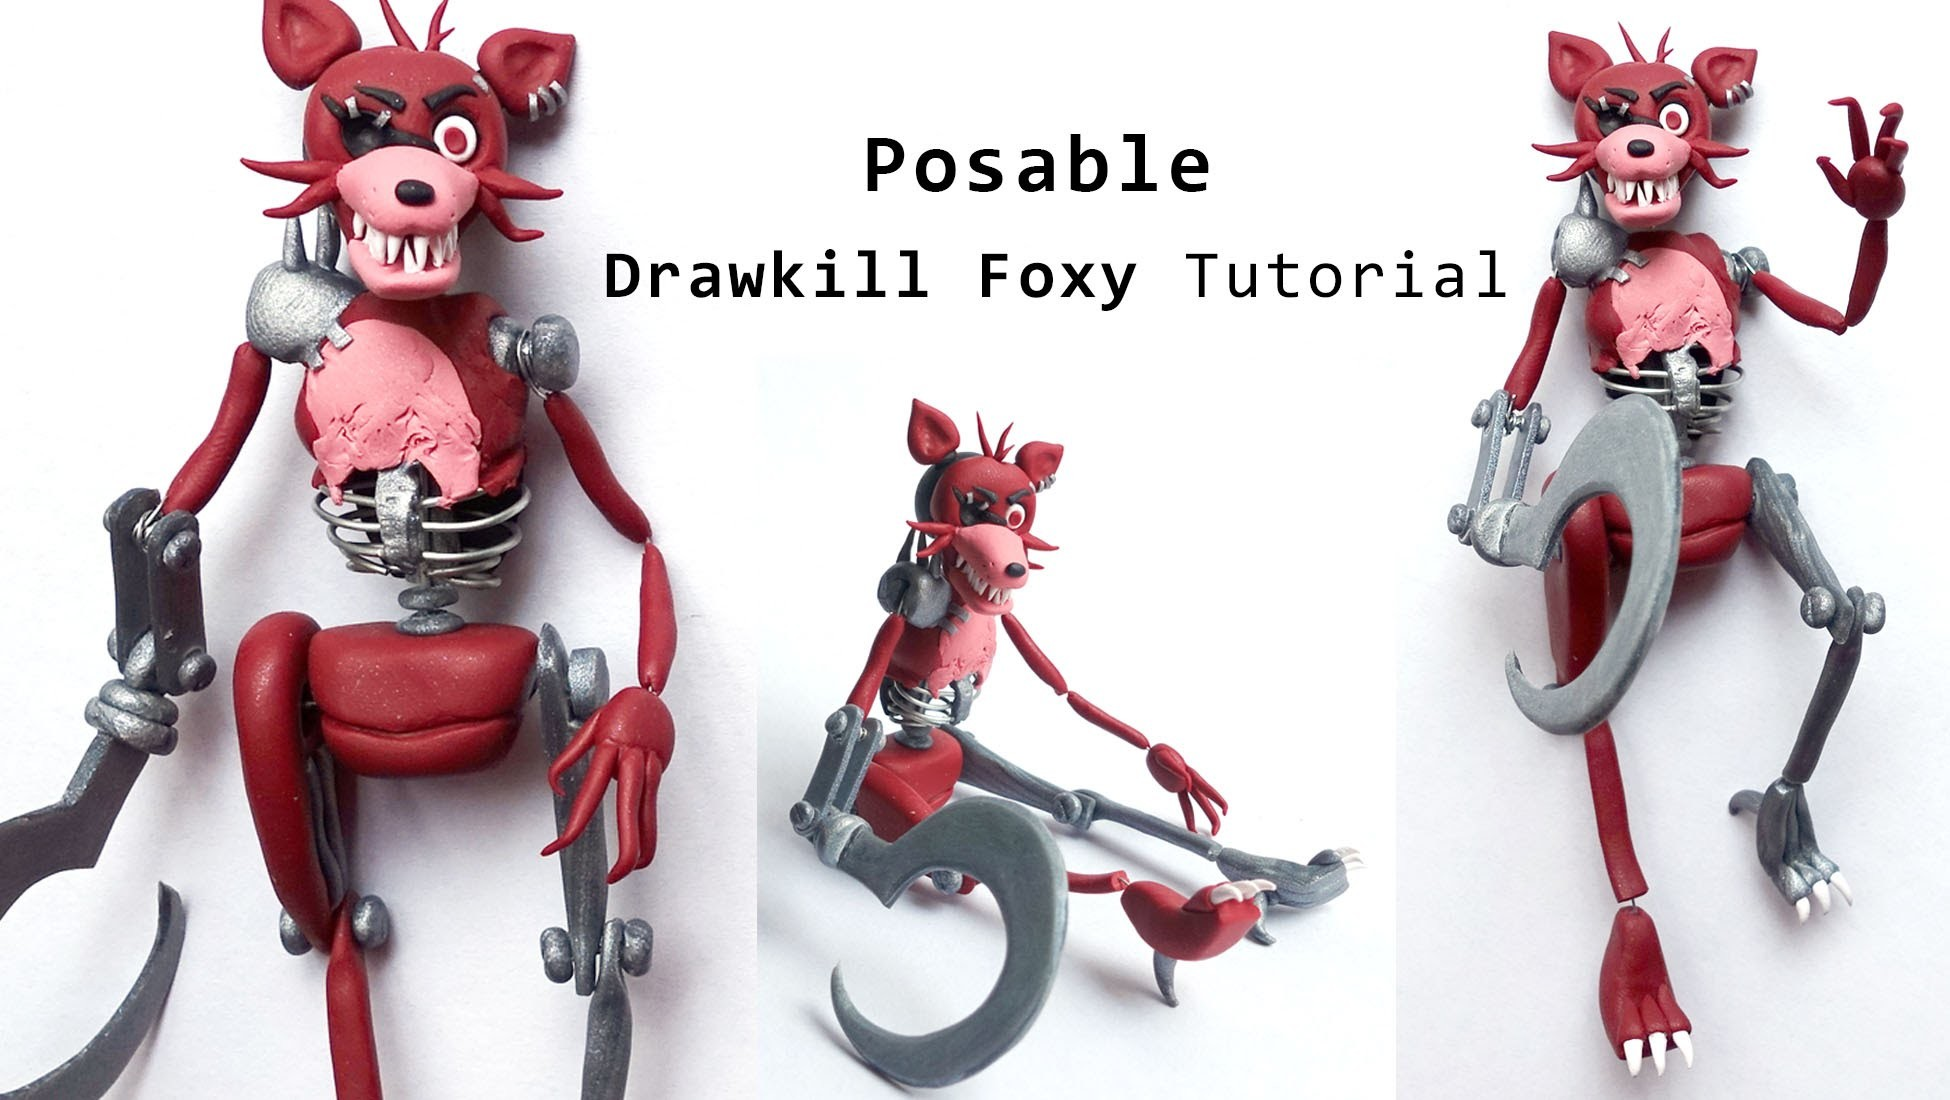 Drawkill Foxy Posable Figure Polymer Clay Tutorial